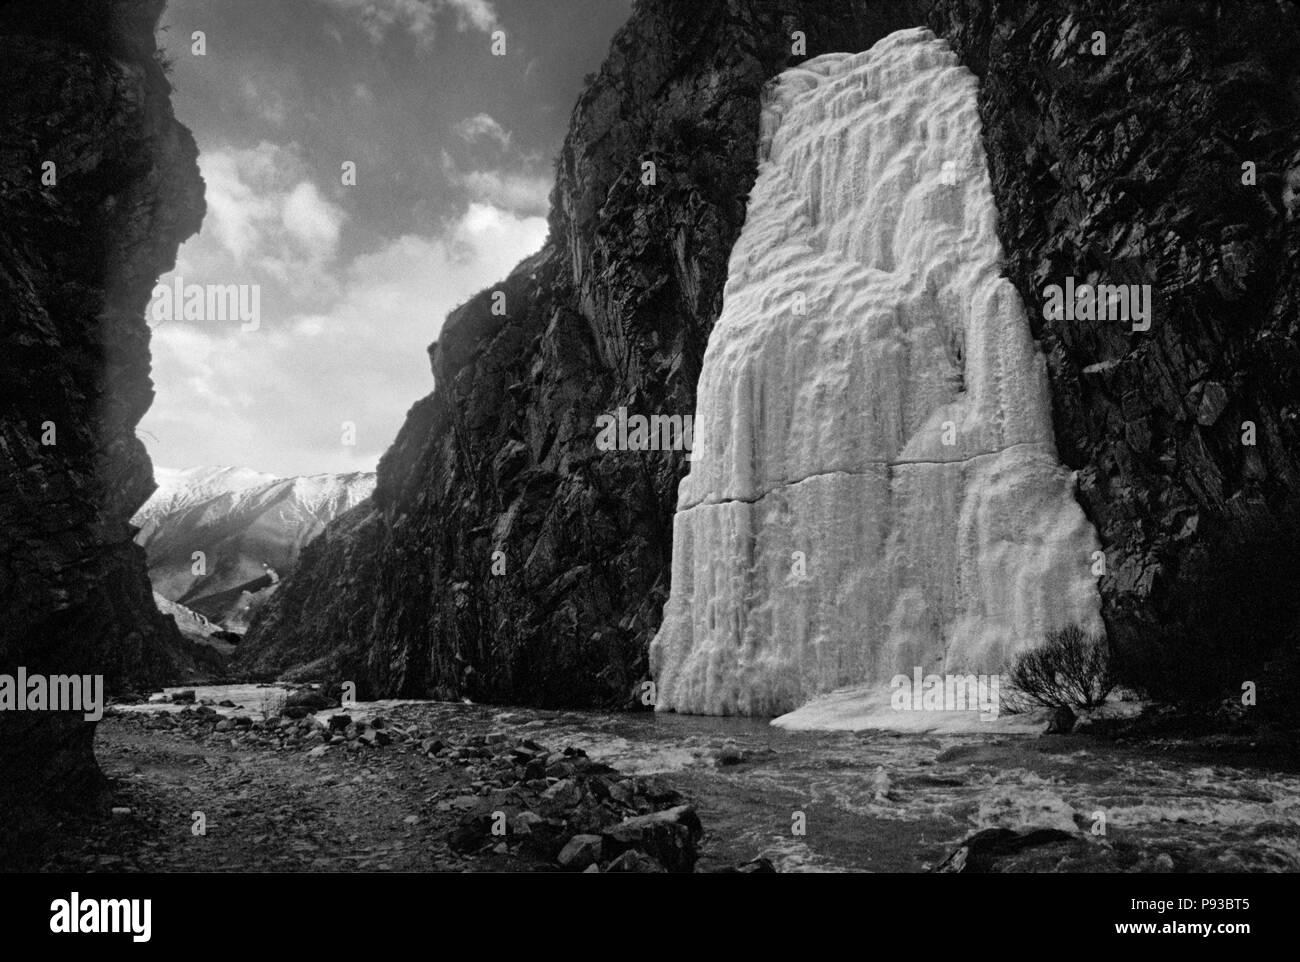 ICE FALL in the river gorge leading to the TERDROM NUNNERY - CENTRAL TIBET - Stock Image